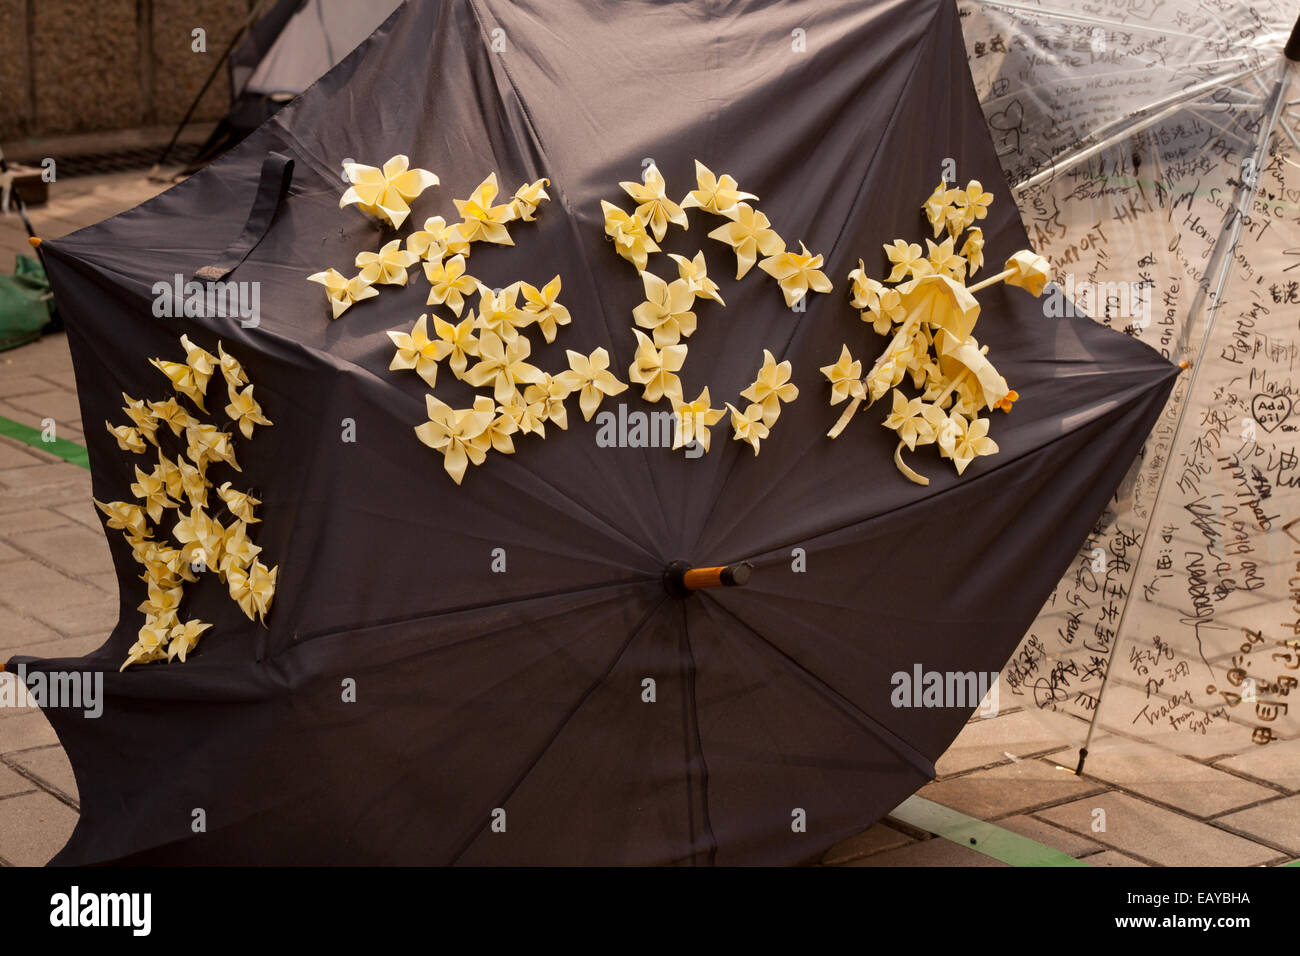 Black Umbrella Decorated With Yellow Paper Flowers And Umbrellas In